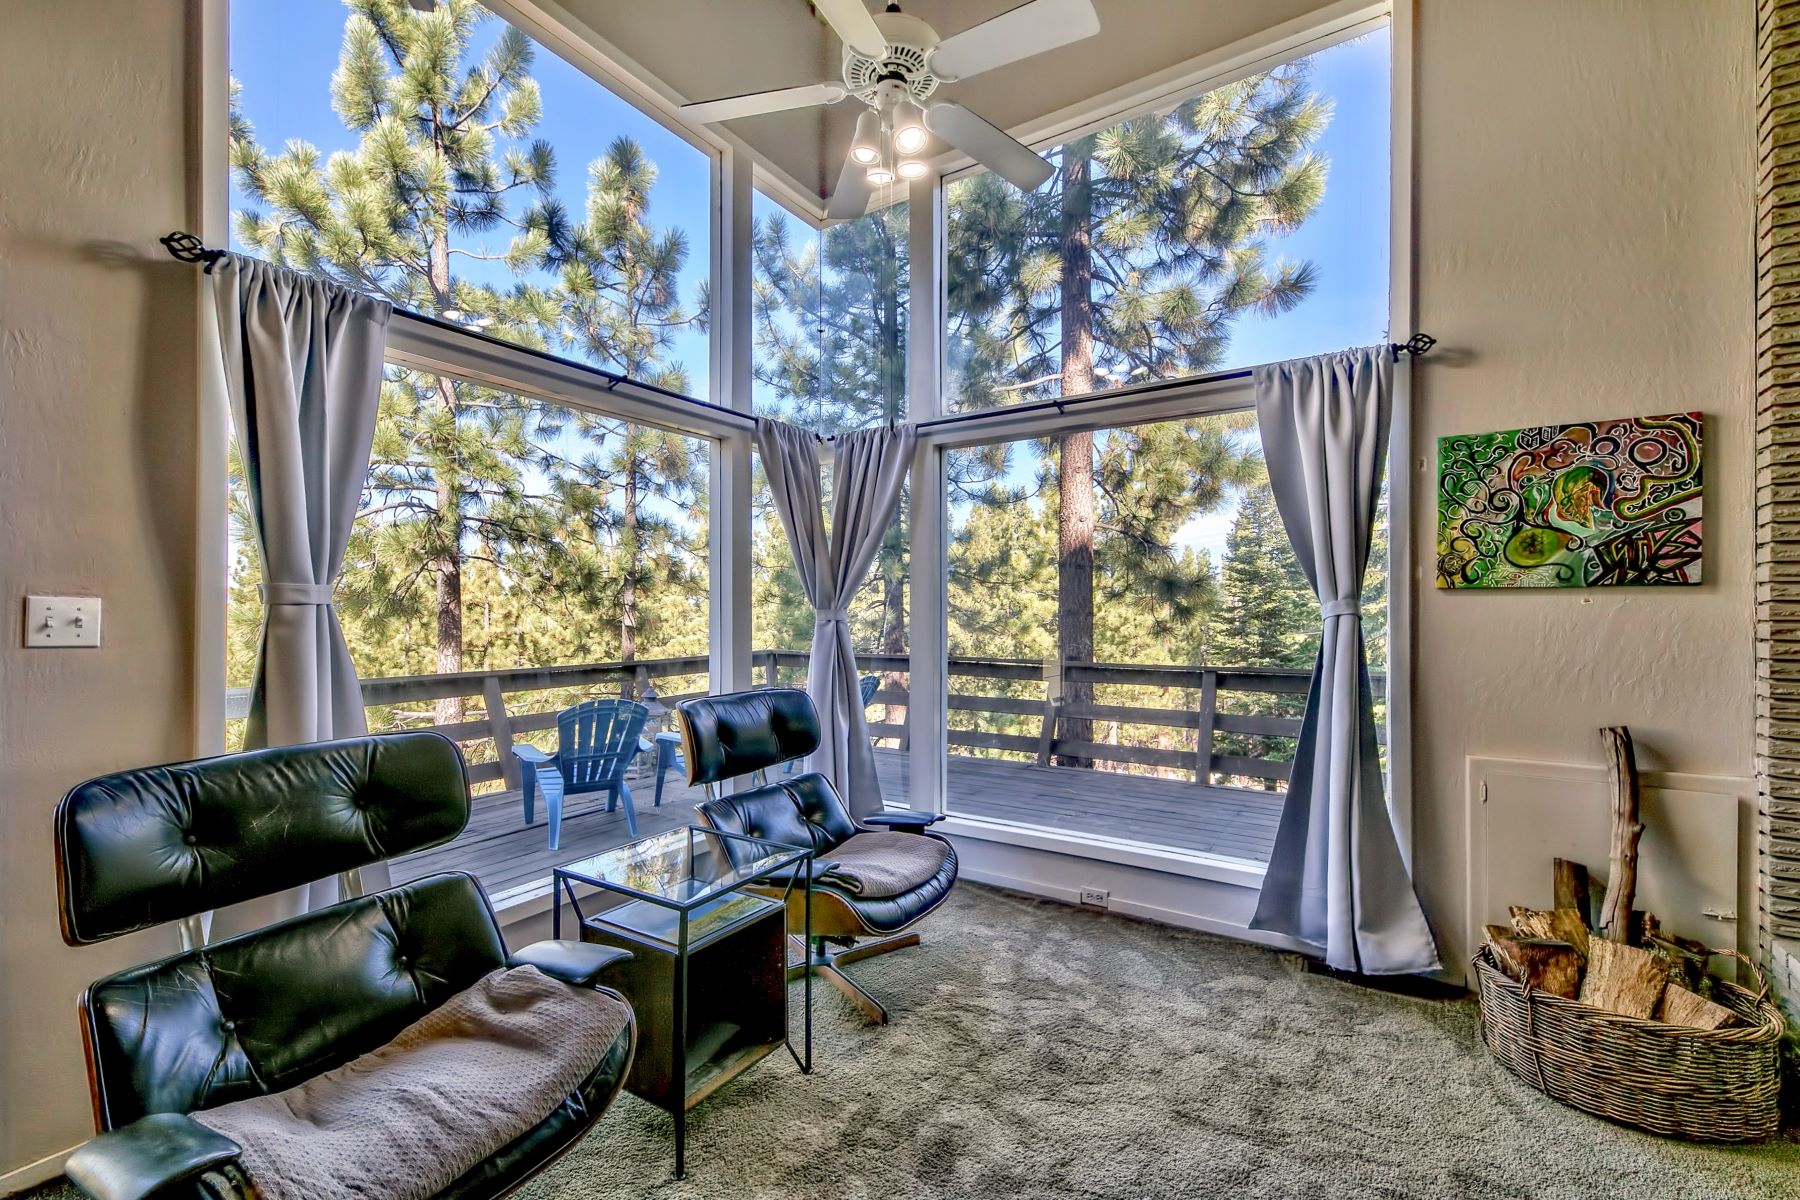 Additional photo for property listing at 3775 Overlook Court, South Lake Tahoe, CA 96150 3775 Overlook Court South Lake Tahoe, California 96150 United States